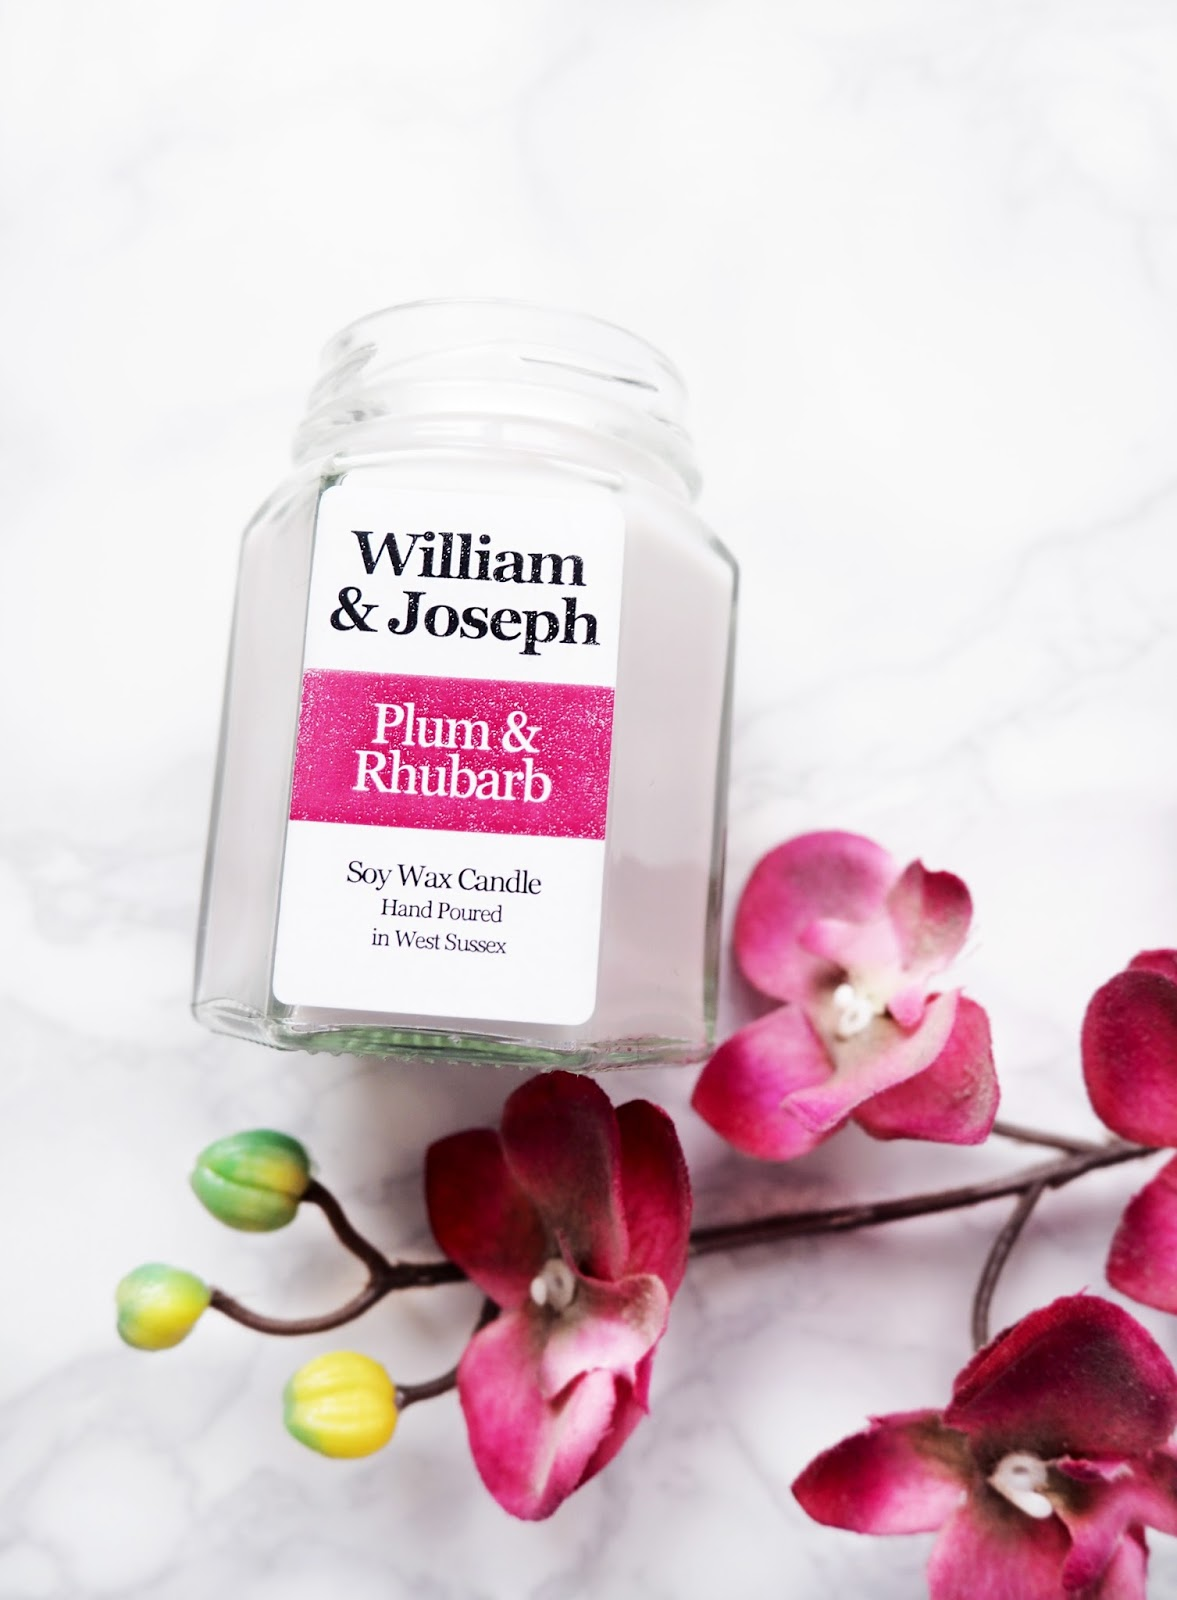 William & Joseph Plum & Rhubarb